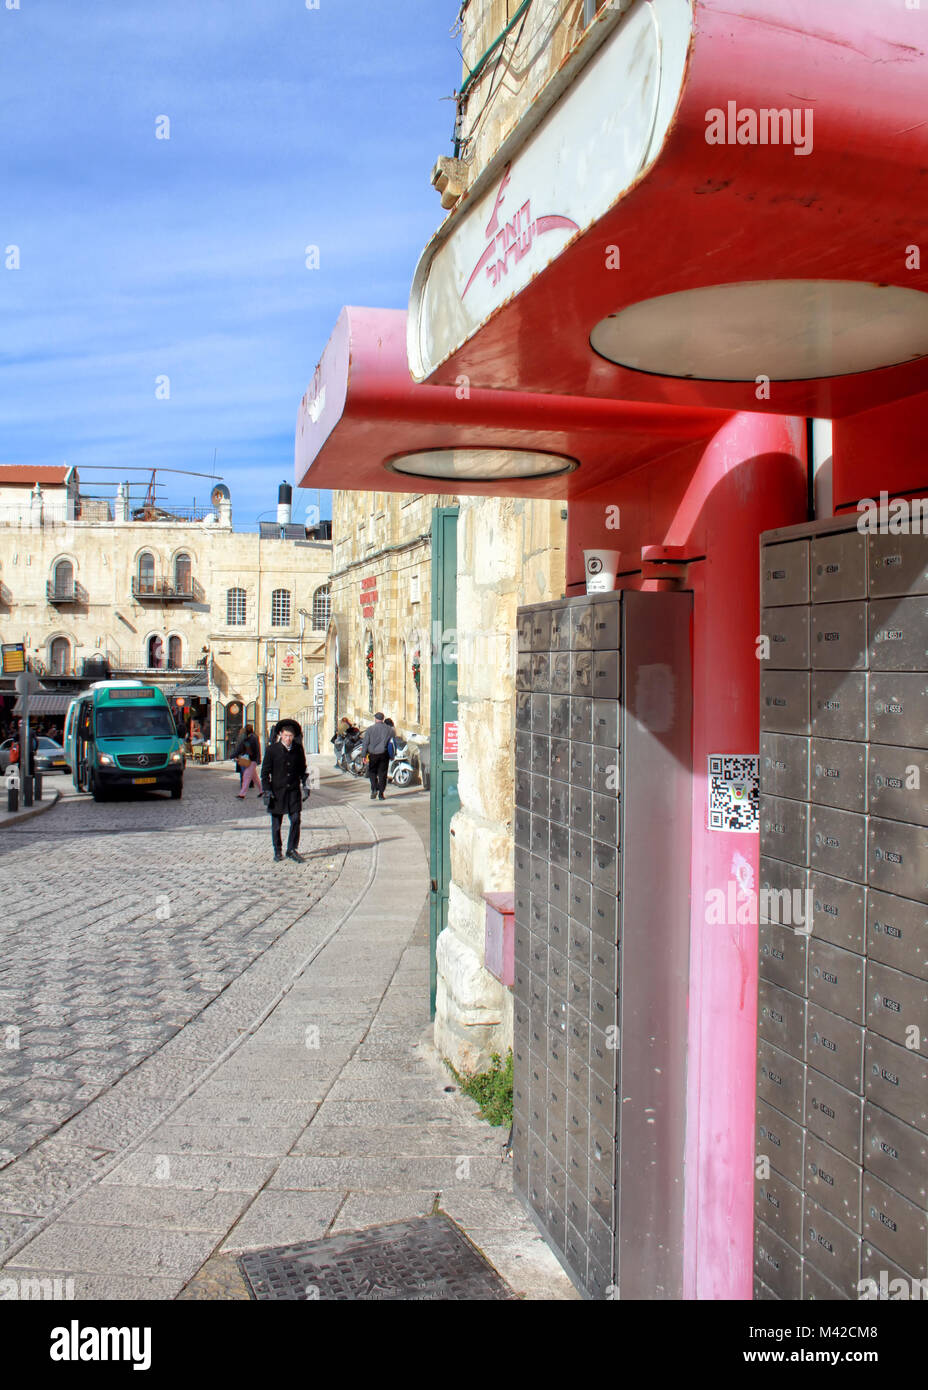 Outdoor post office boxes are lined up next to a street in Jerusalem's Old City, just inside Jaffa Gate. - Stock Image